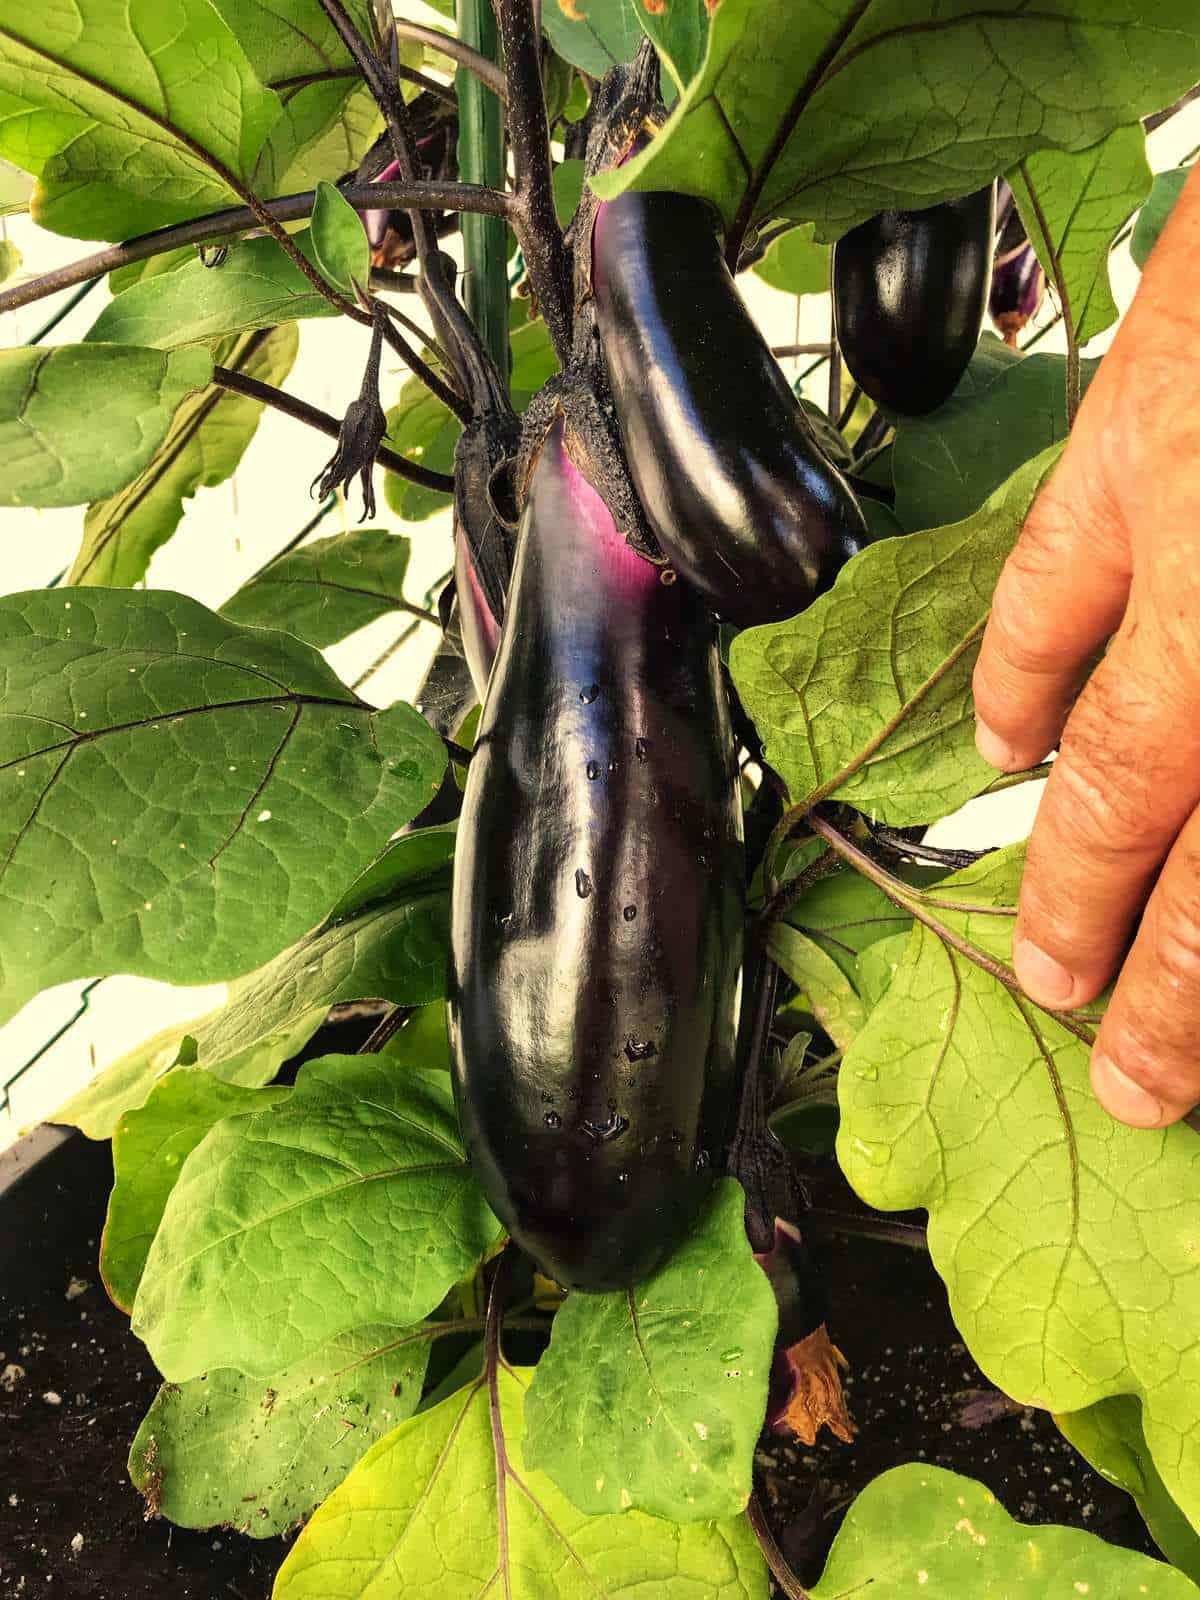 A hanging eggplant from a plant.